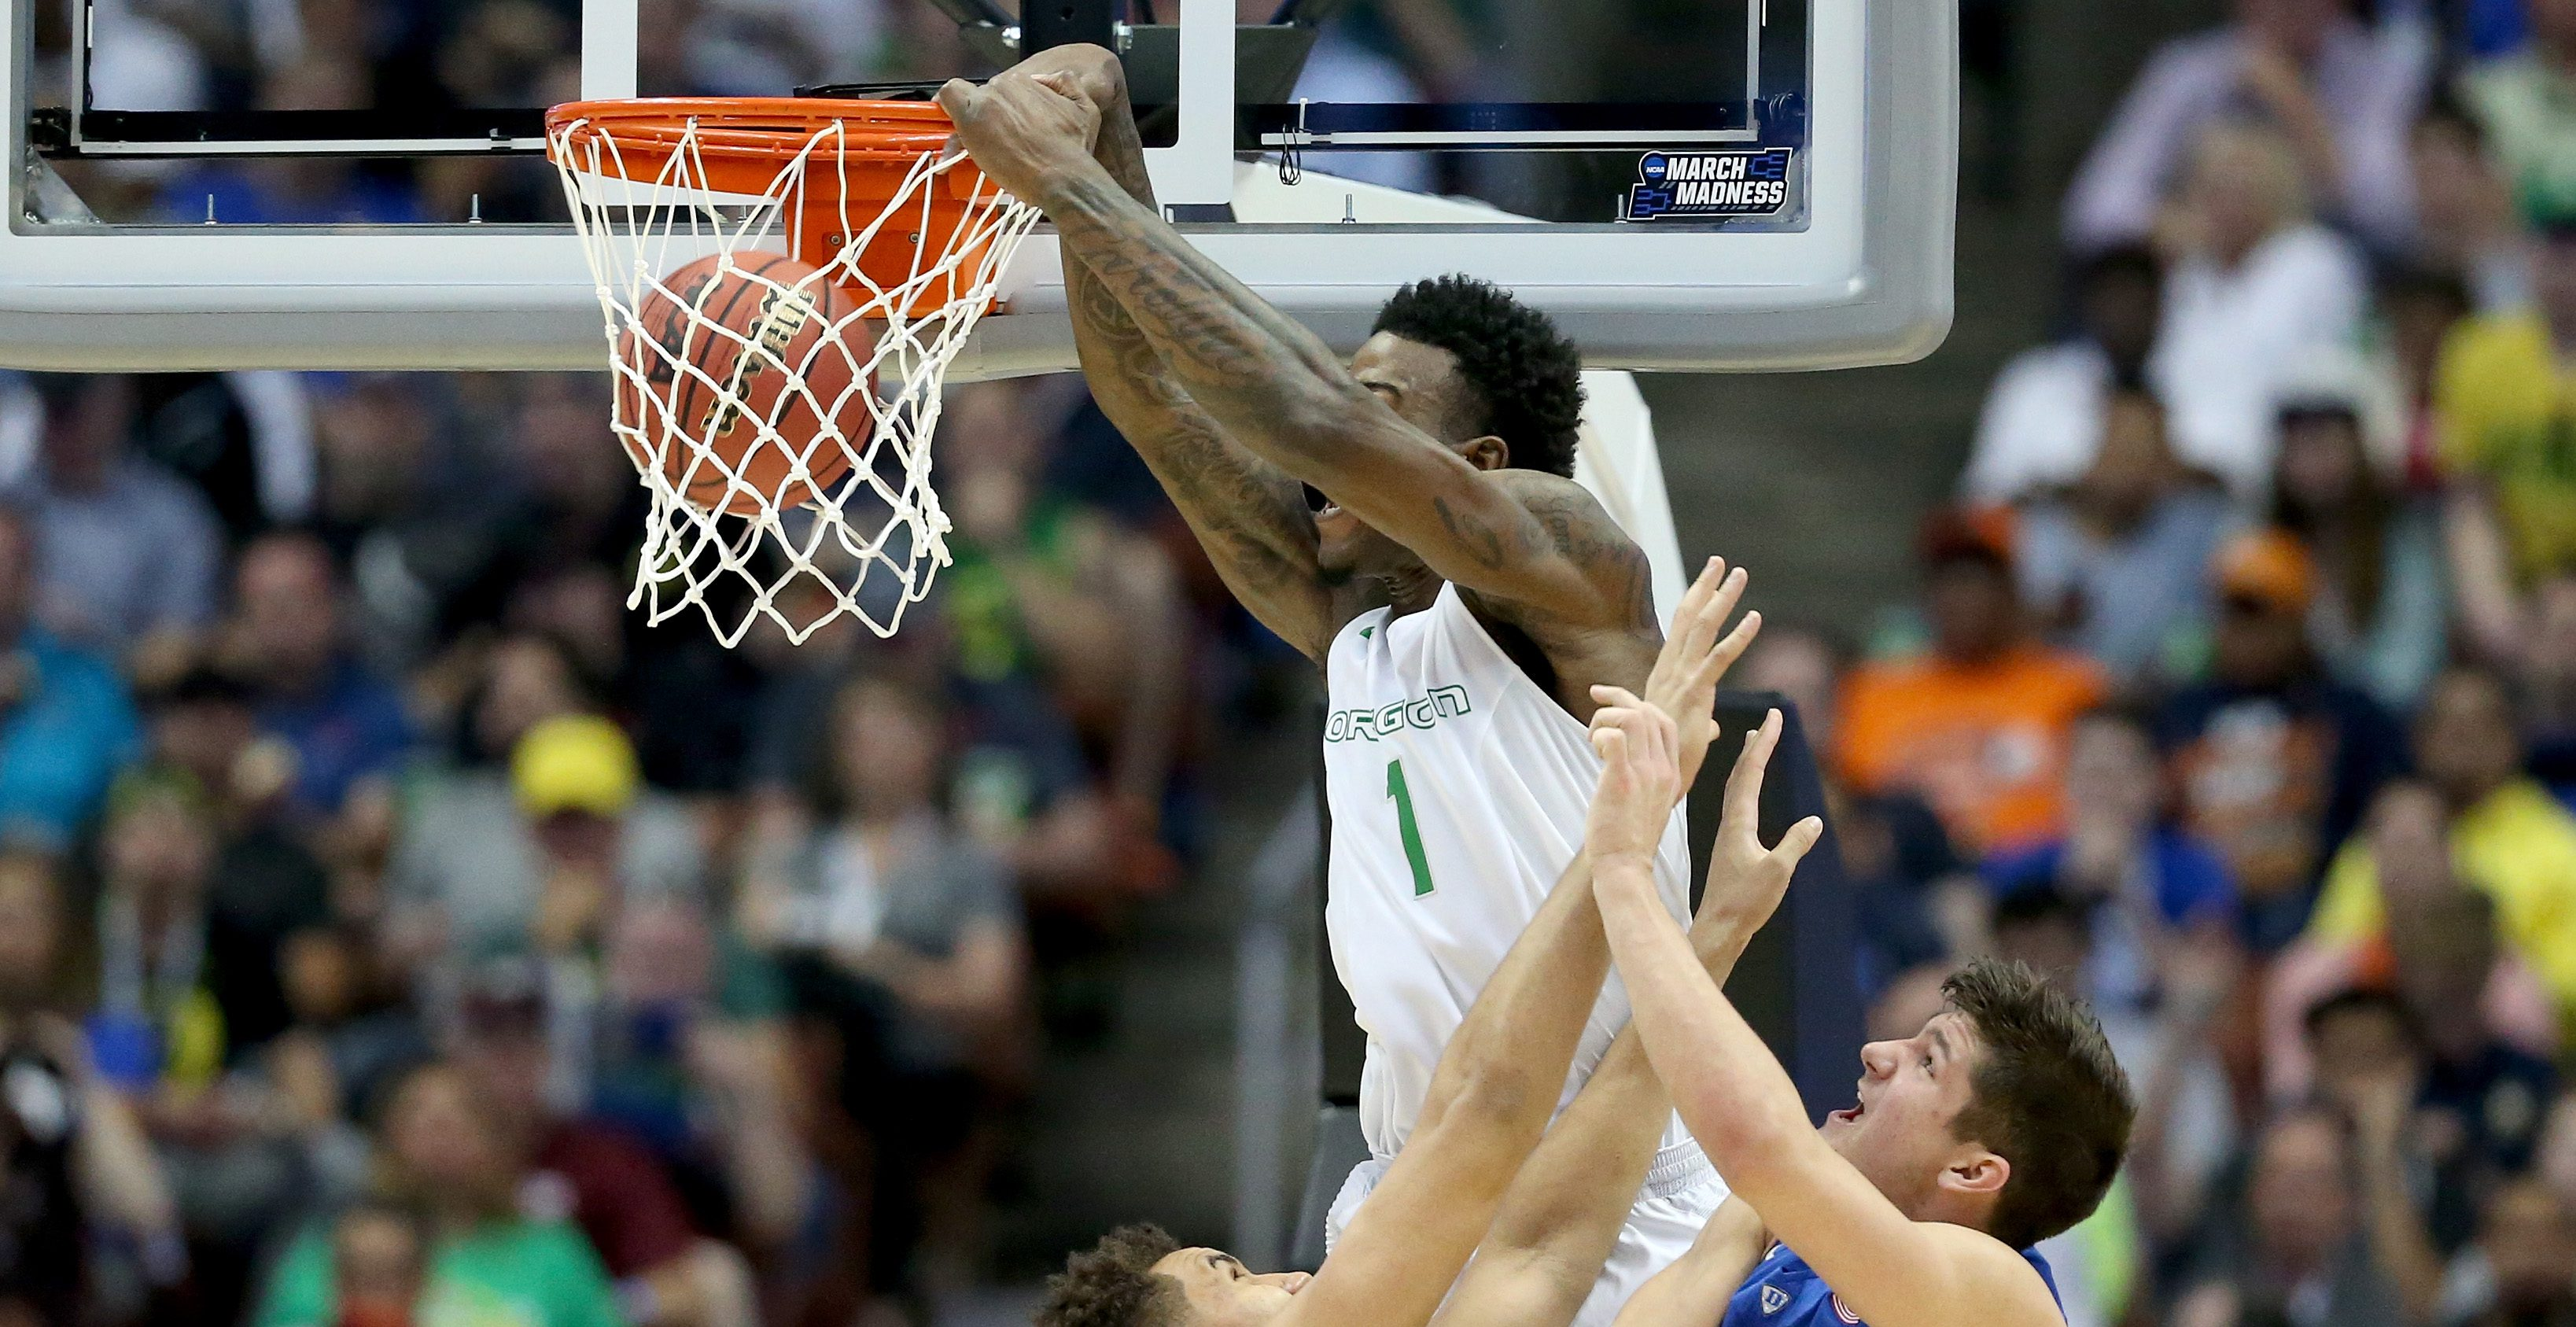 ANAHEIM, CA - MARCH 24: Jordan Bell #1 of the Oregon Ducks dunks the ball against Chase Jeter #2 and Grayson Allen #3 of the Duke Blue Devils in the first half in the 2016 NCAA Men's Basketball Tournament West Regional at the Honda Center on March 24, 2016 in Anaheim, California. (Photo by Sean M. Haffey/Getty Images)